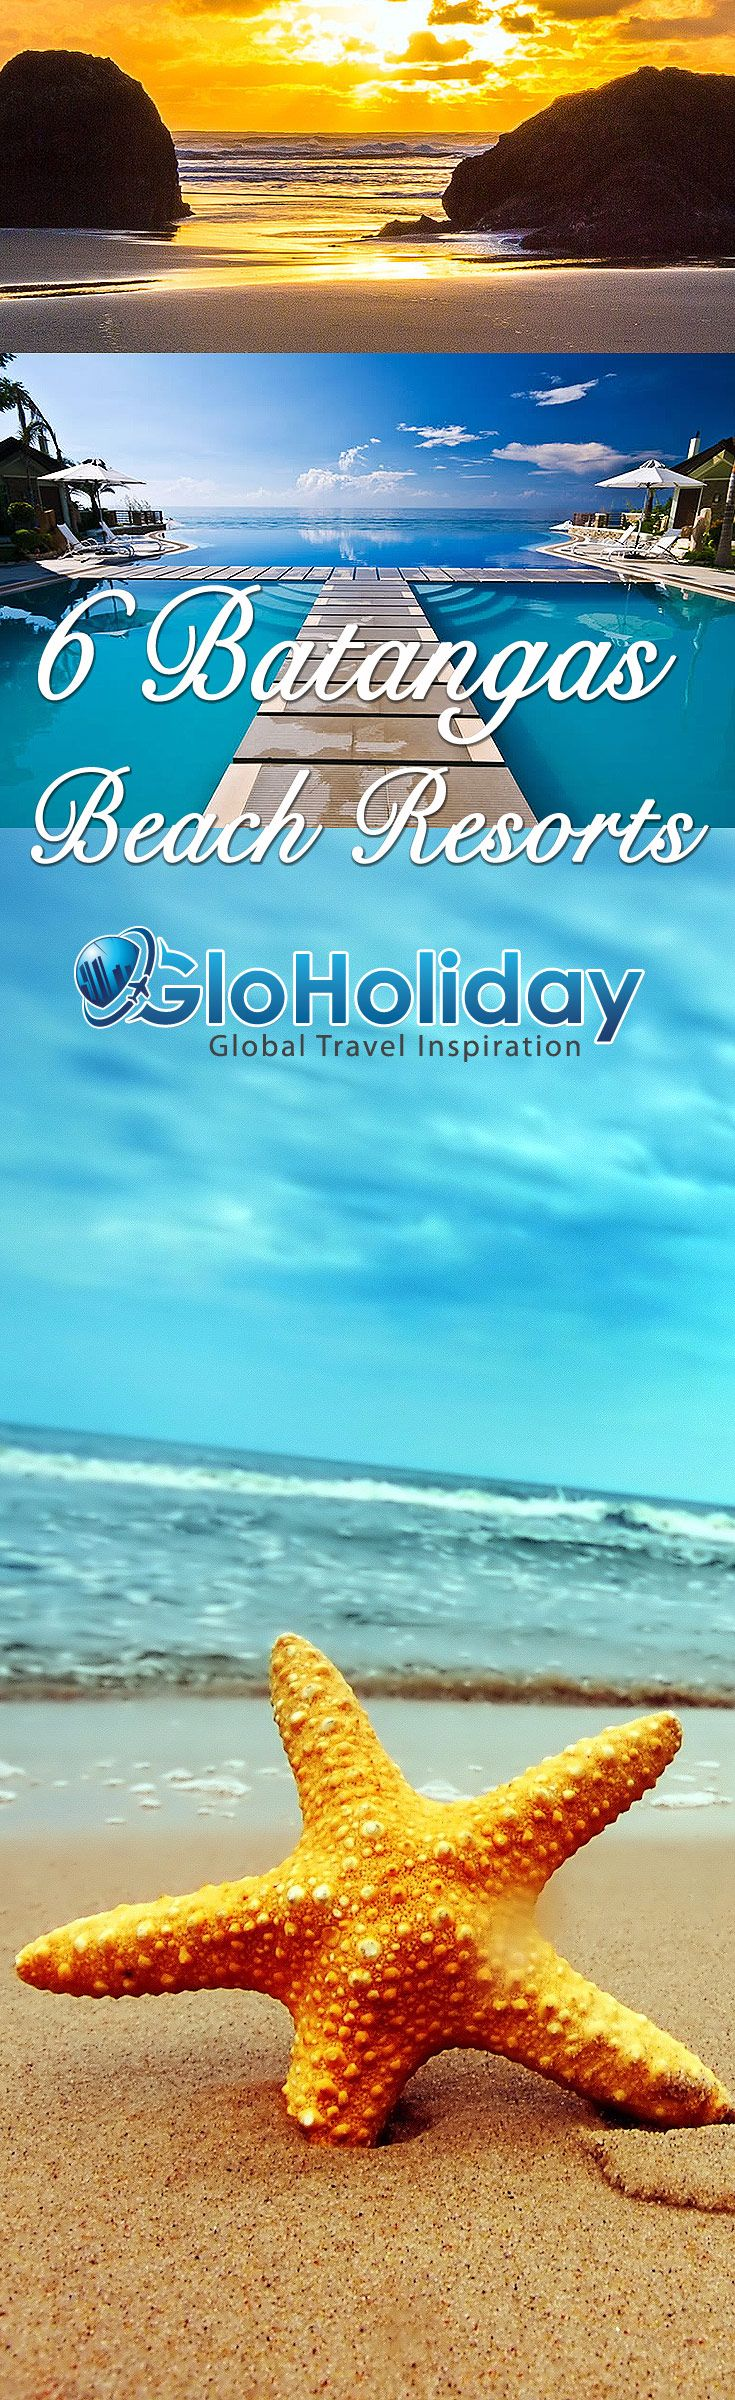 Here for your enjoyment are six of the absolute best Budget Nasugbu Batangas Beach Resorts. We have updated this feature on top Nasugbu Batangas beach resorts for 2016.